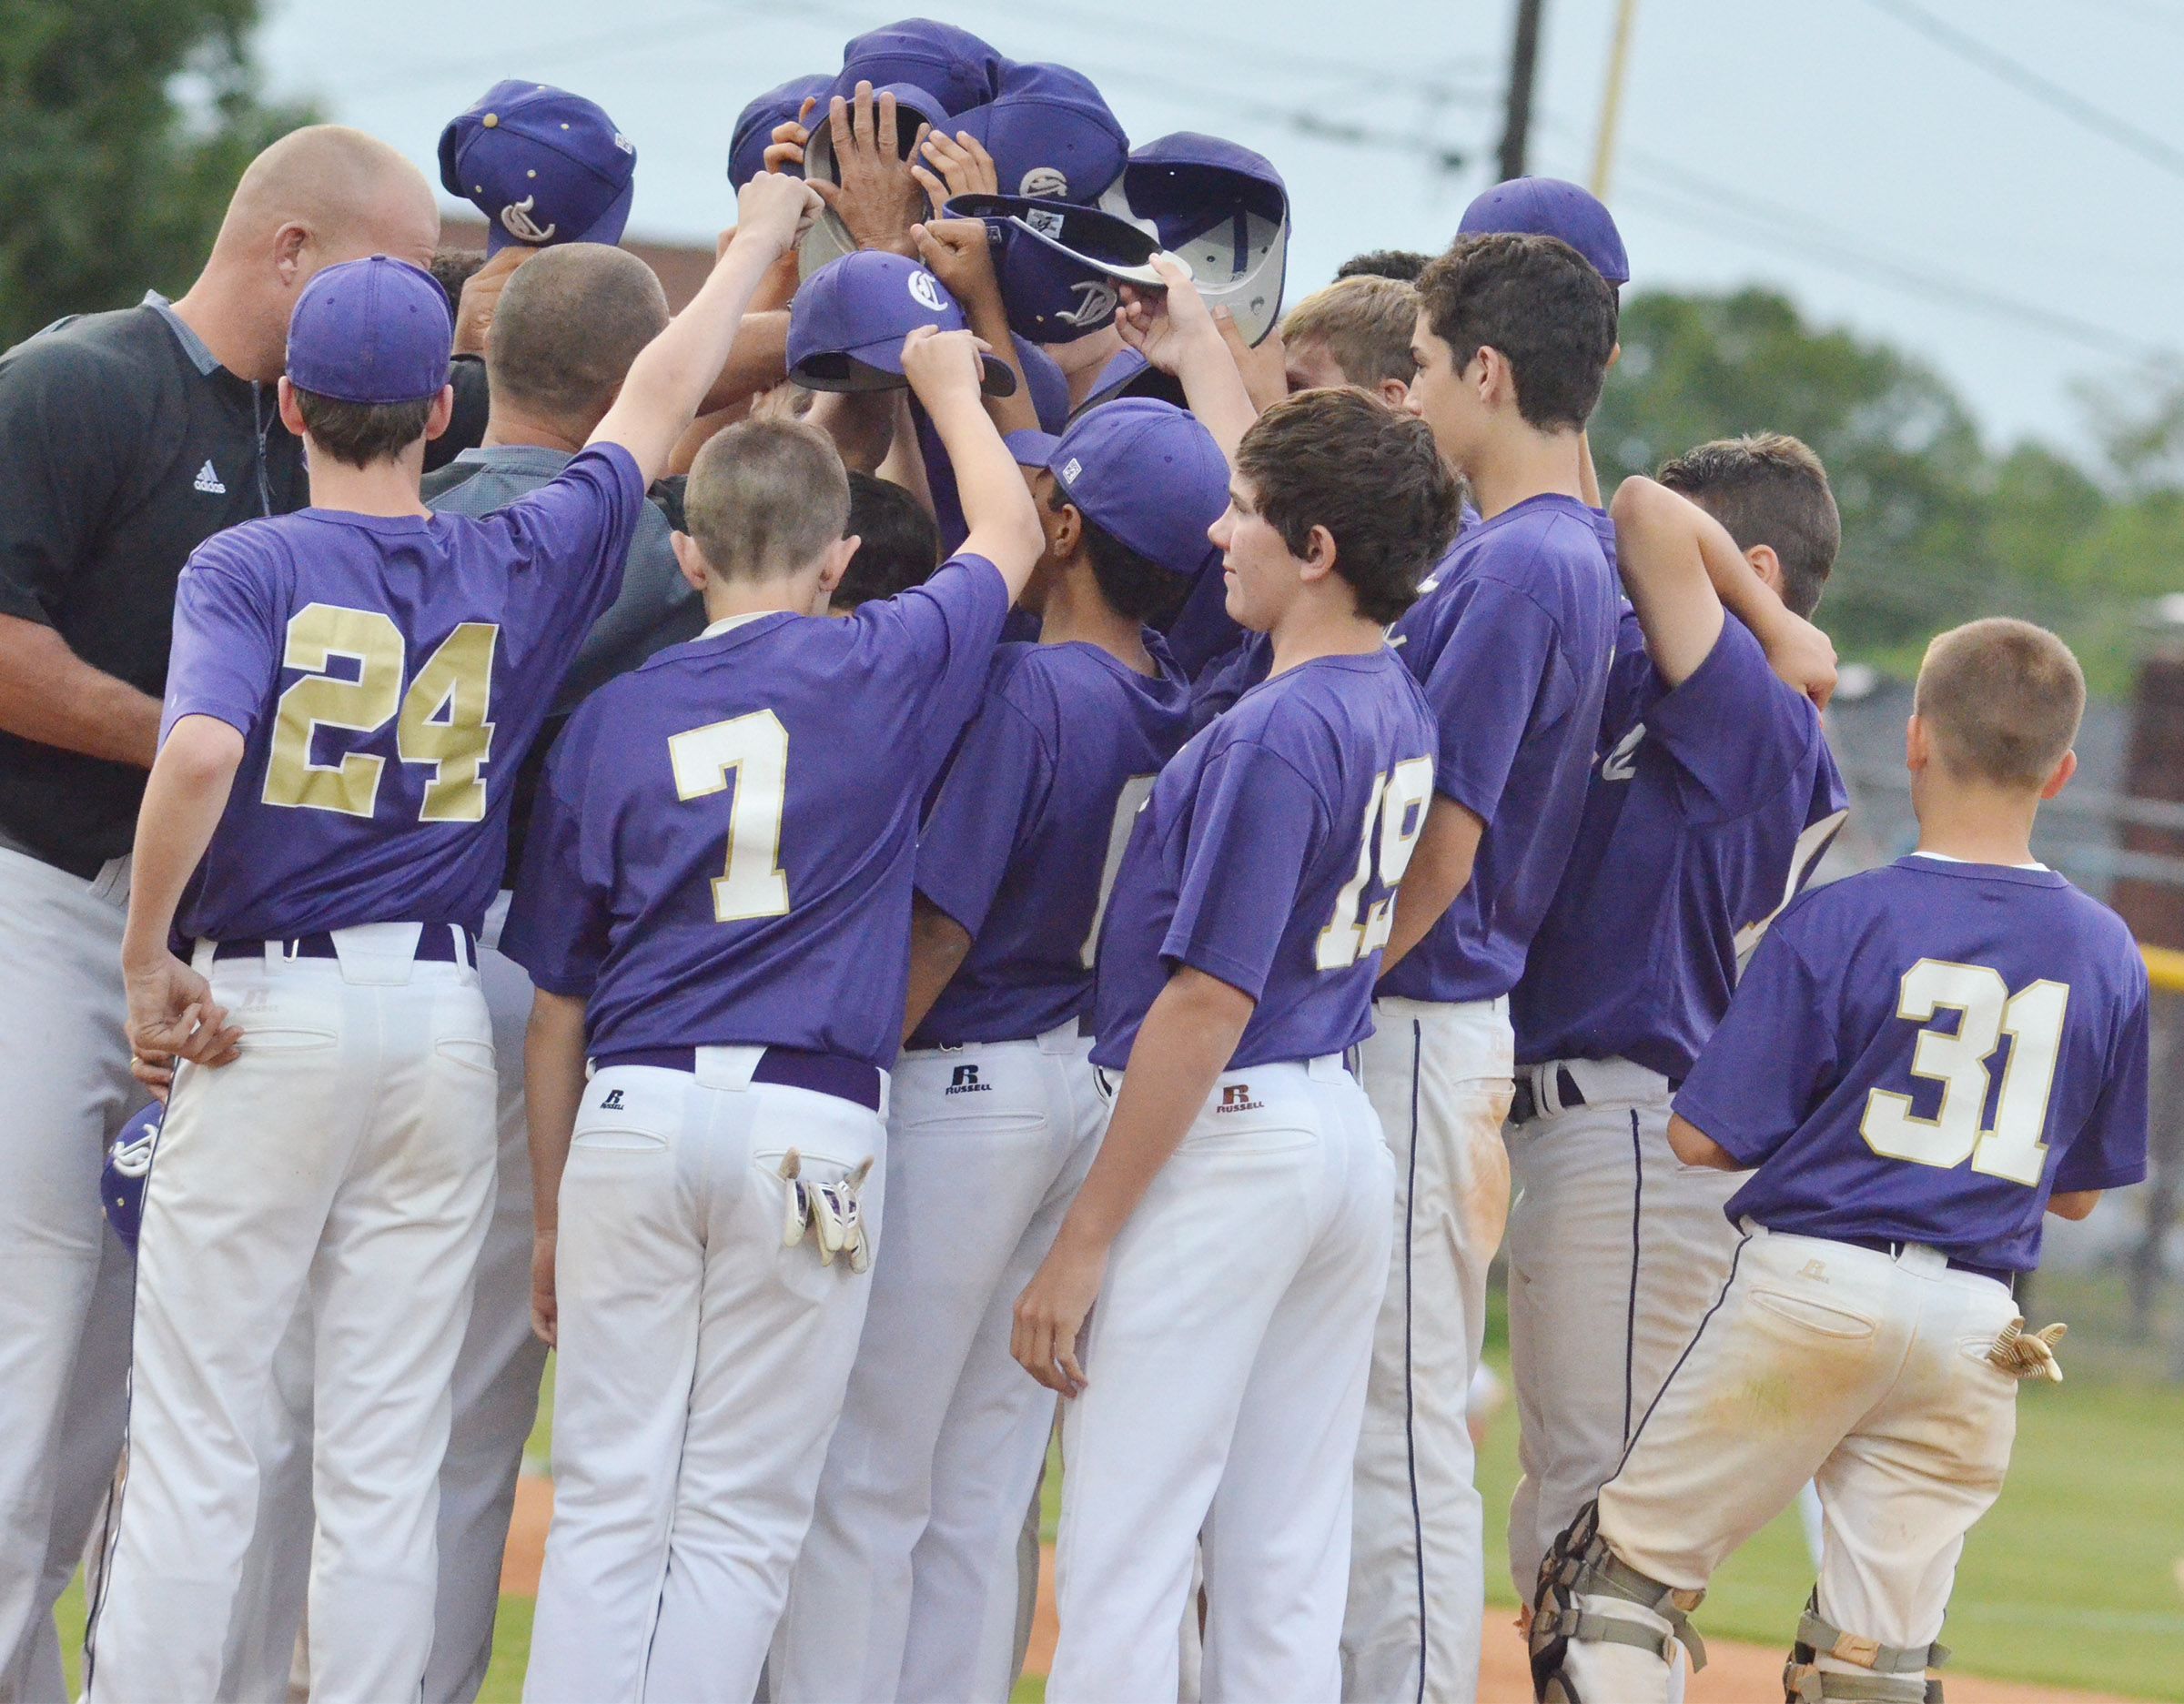 CMS baseball players huddle after their win.